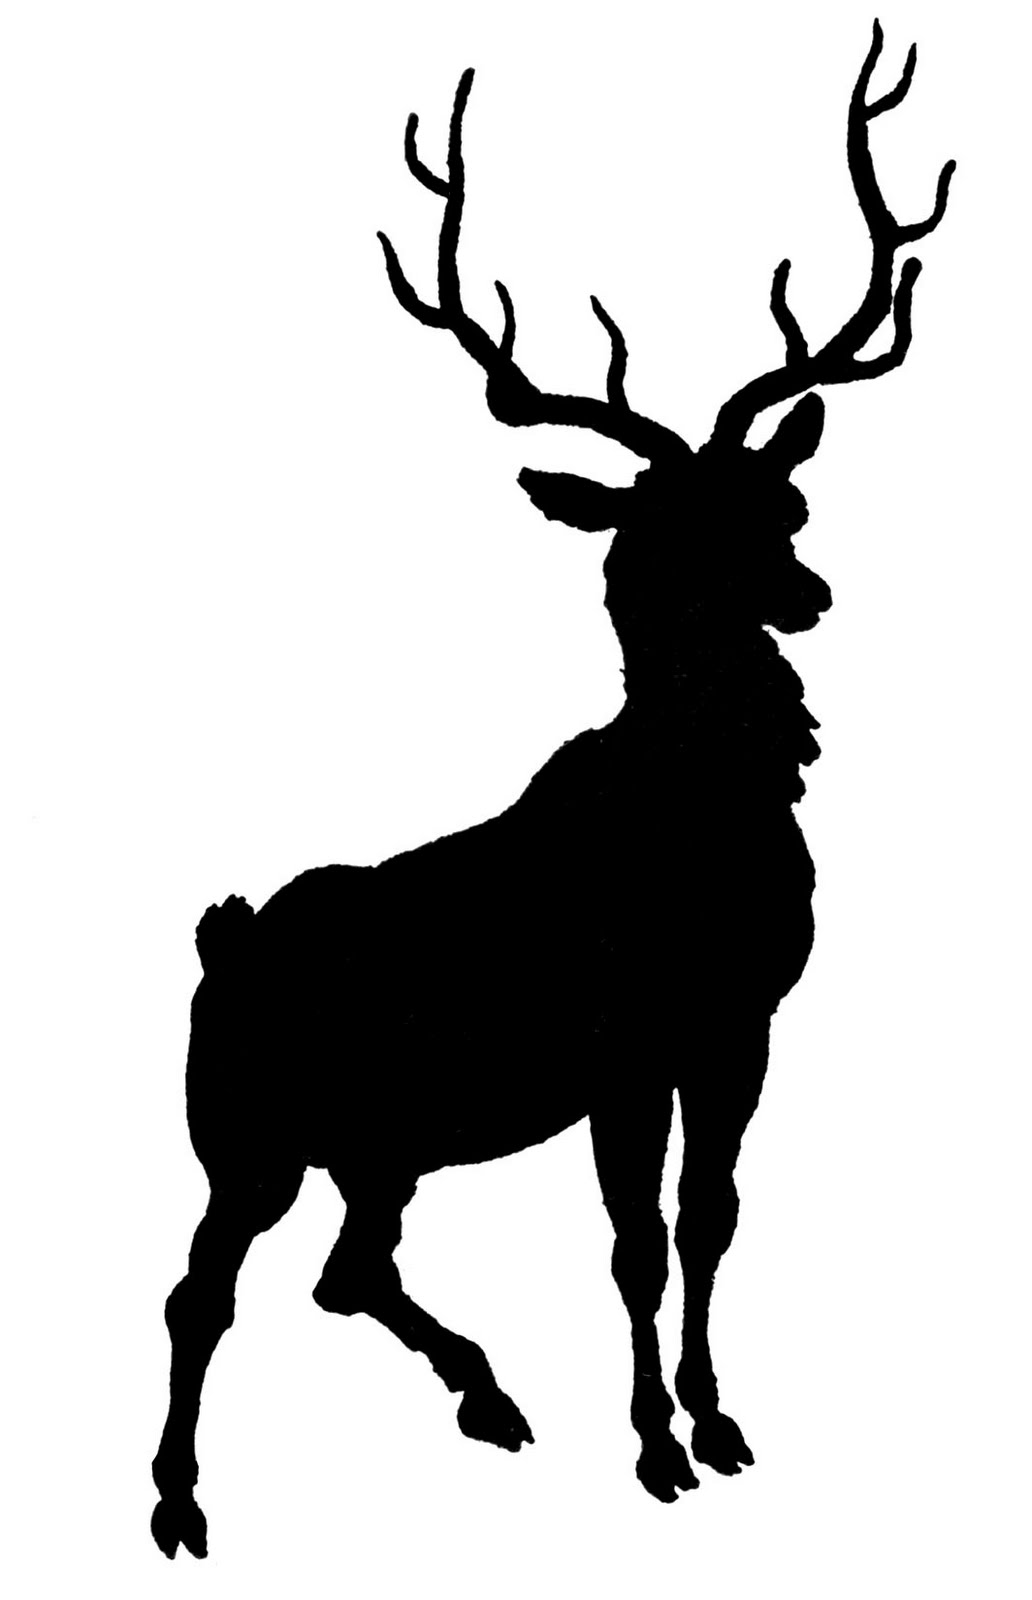 whitetail deer silhouette clip art at getdrawings com free for rh getdrawings com whitetail deer head clipart whitetail deer clip art black and white